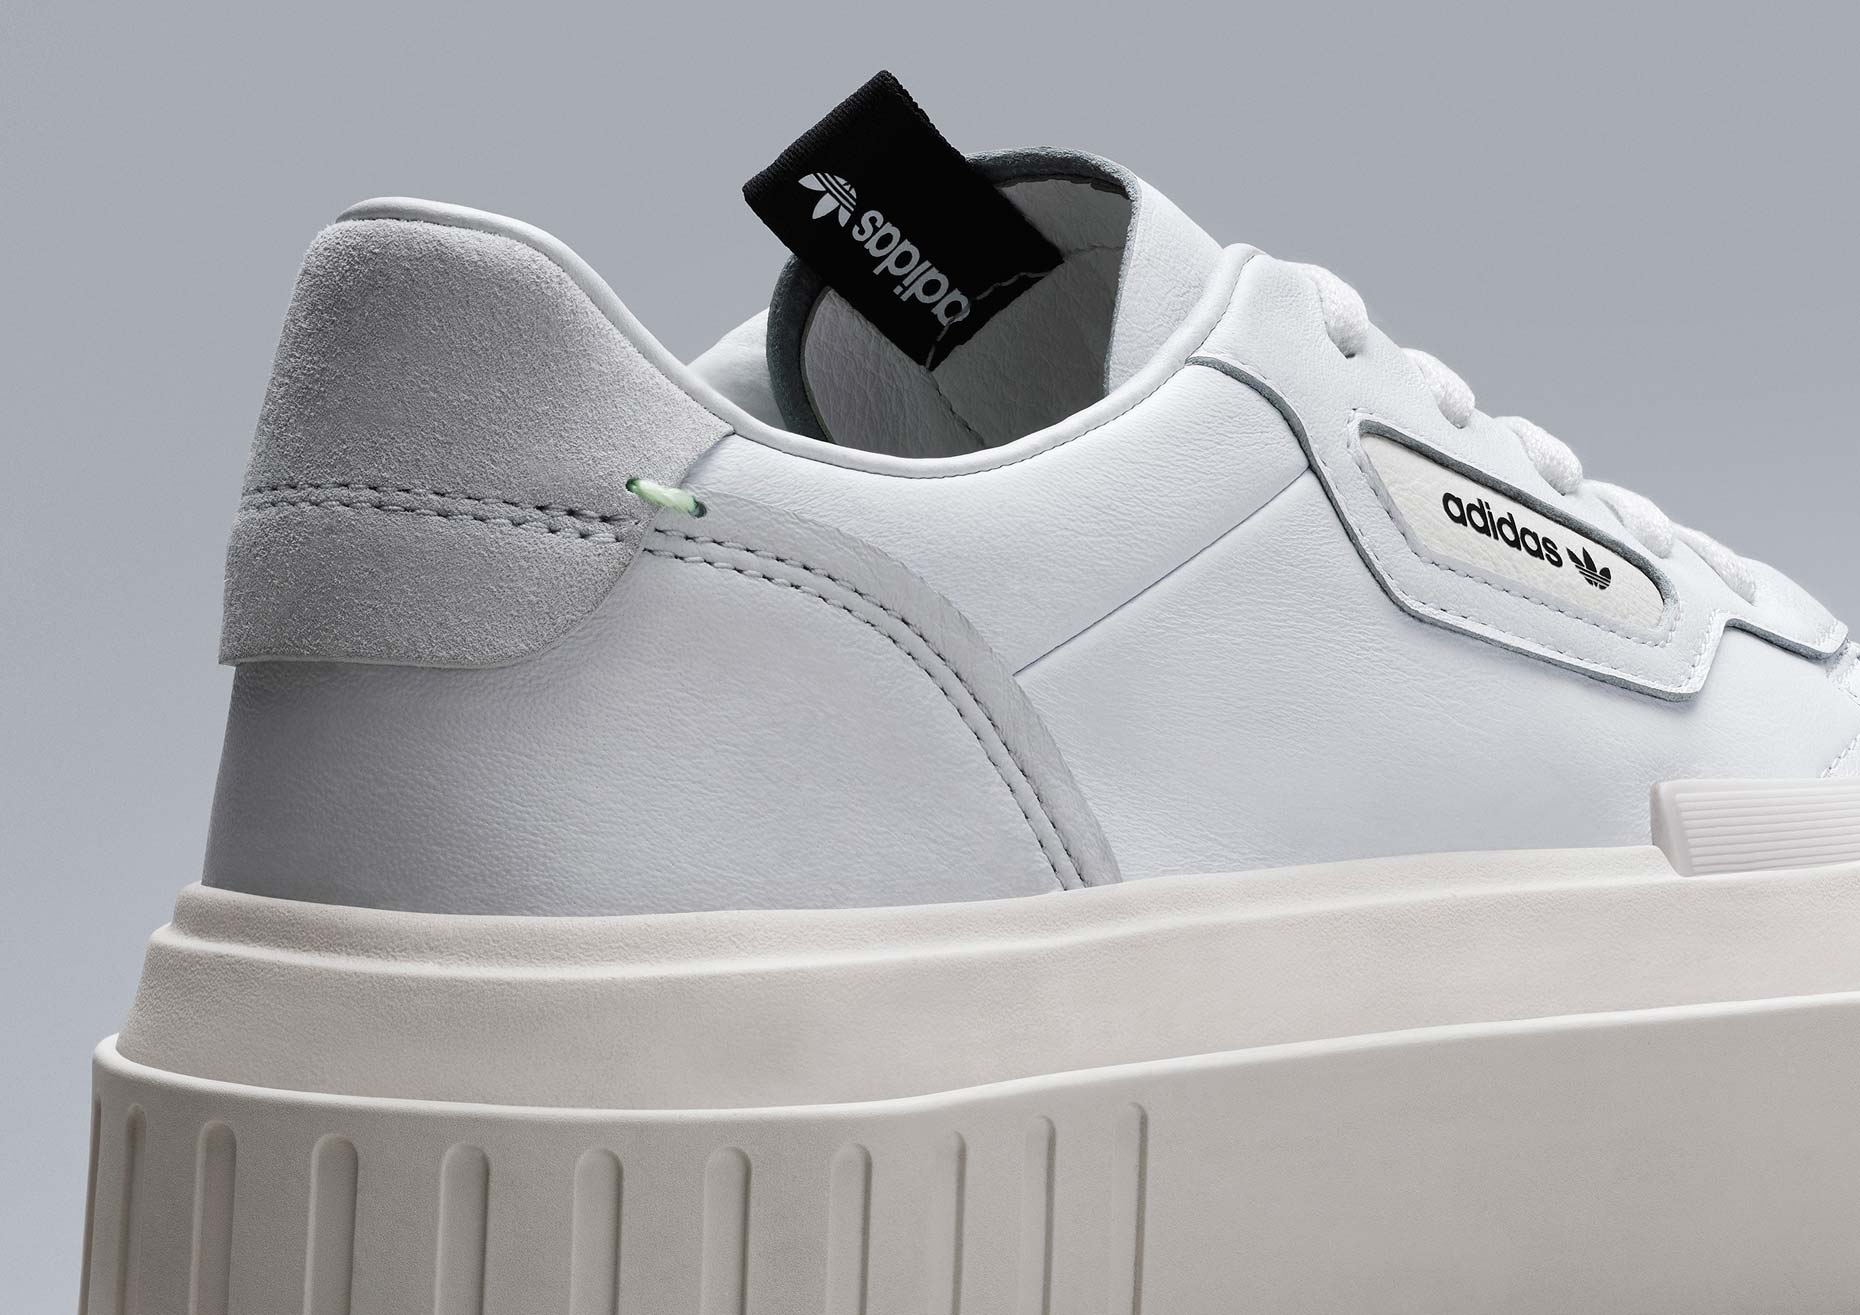 adidasOriginals_SS19_Sleek_HYPERSLEEKW_G54050_03_Detail_COMP_c